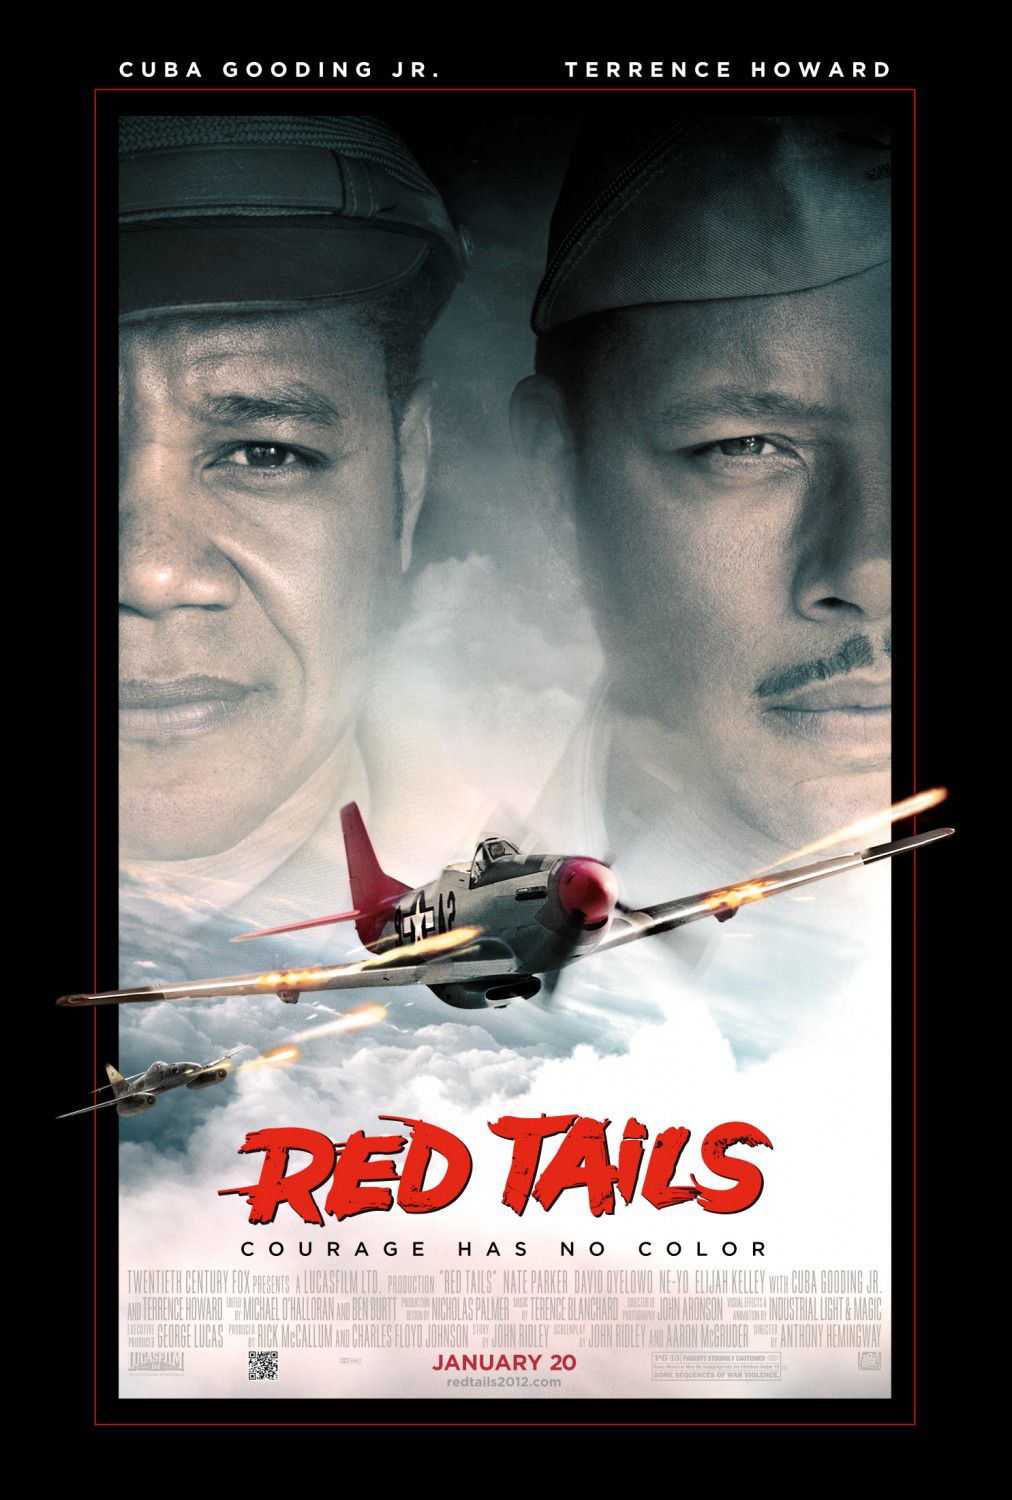 Red Tails - airplane battle film poster